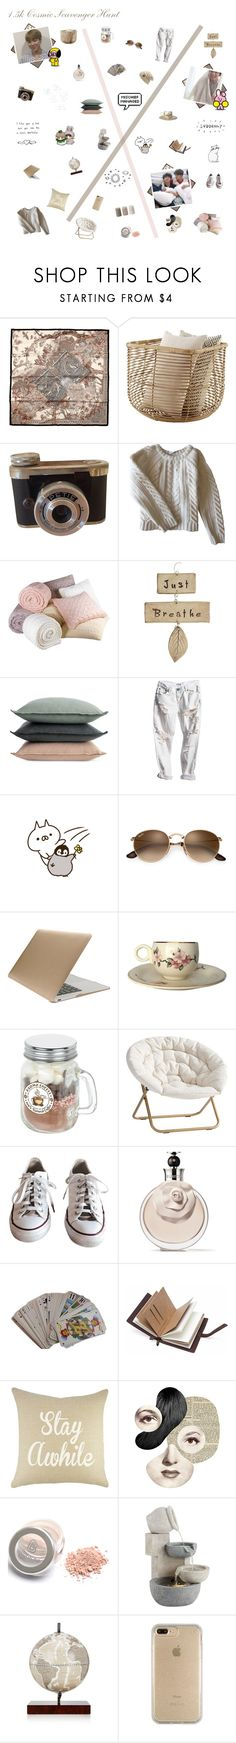 """""""1.5k Cosmic Scavenger Hunt // Cover Set"""" by lola-twfanmily ❤ liked on Polyvore featuring Anine Bing, Design Within Reach, OneTeaspoon, GET LOST, Tucano, PBteen, Converse, Valentino, Hermès and John Timberland"""